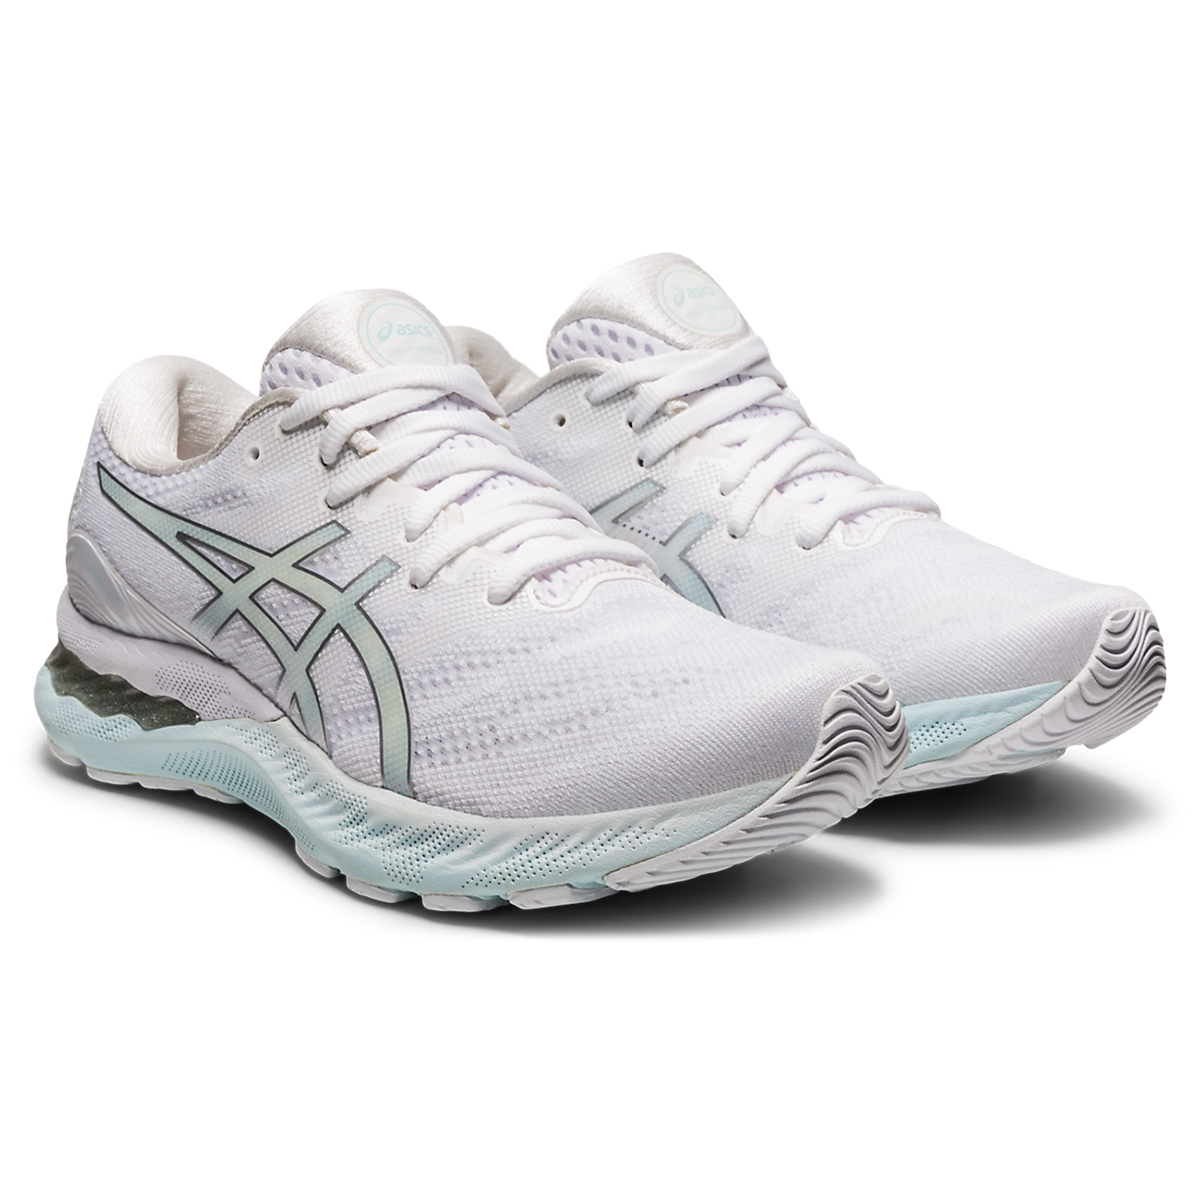 Women's Asics Gel-Nimbus 23 Running Shoe - Color: White/Pure Silver - Size: 5 - Width: Regular, White/Pure Silver, large, image 4